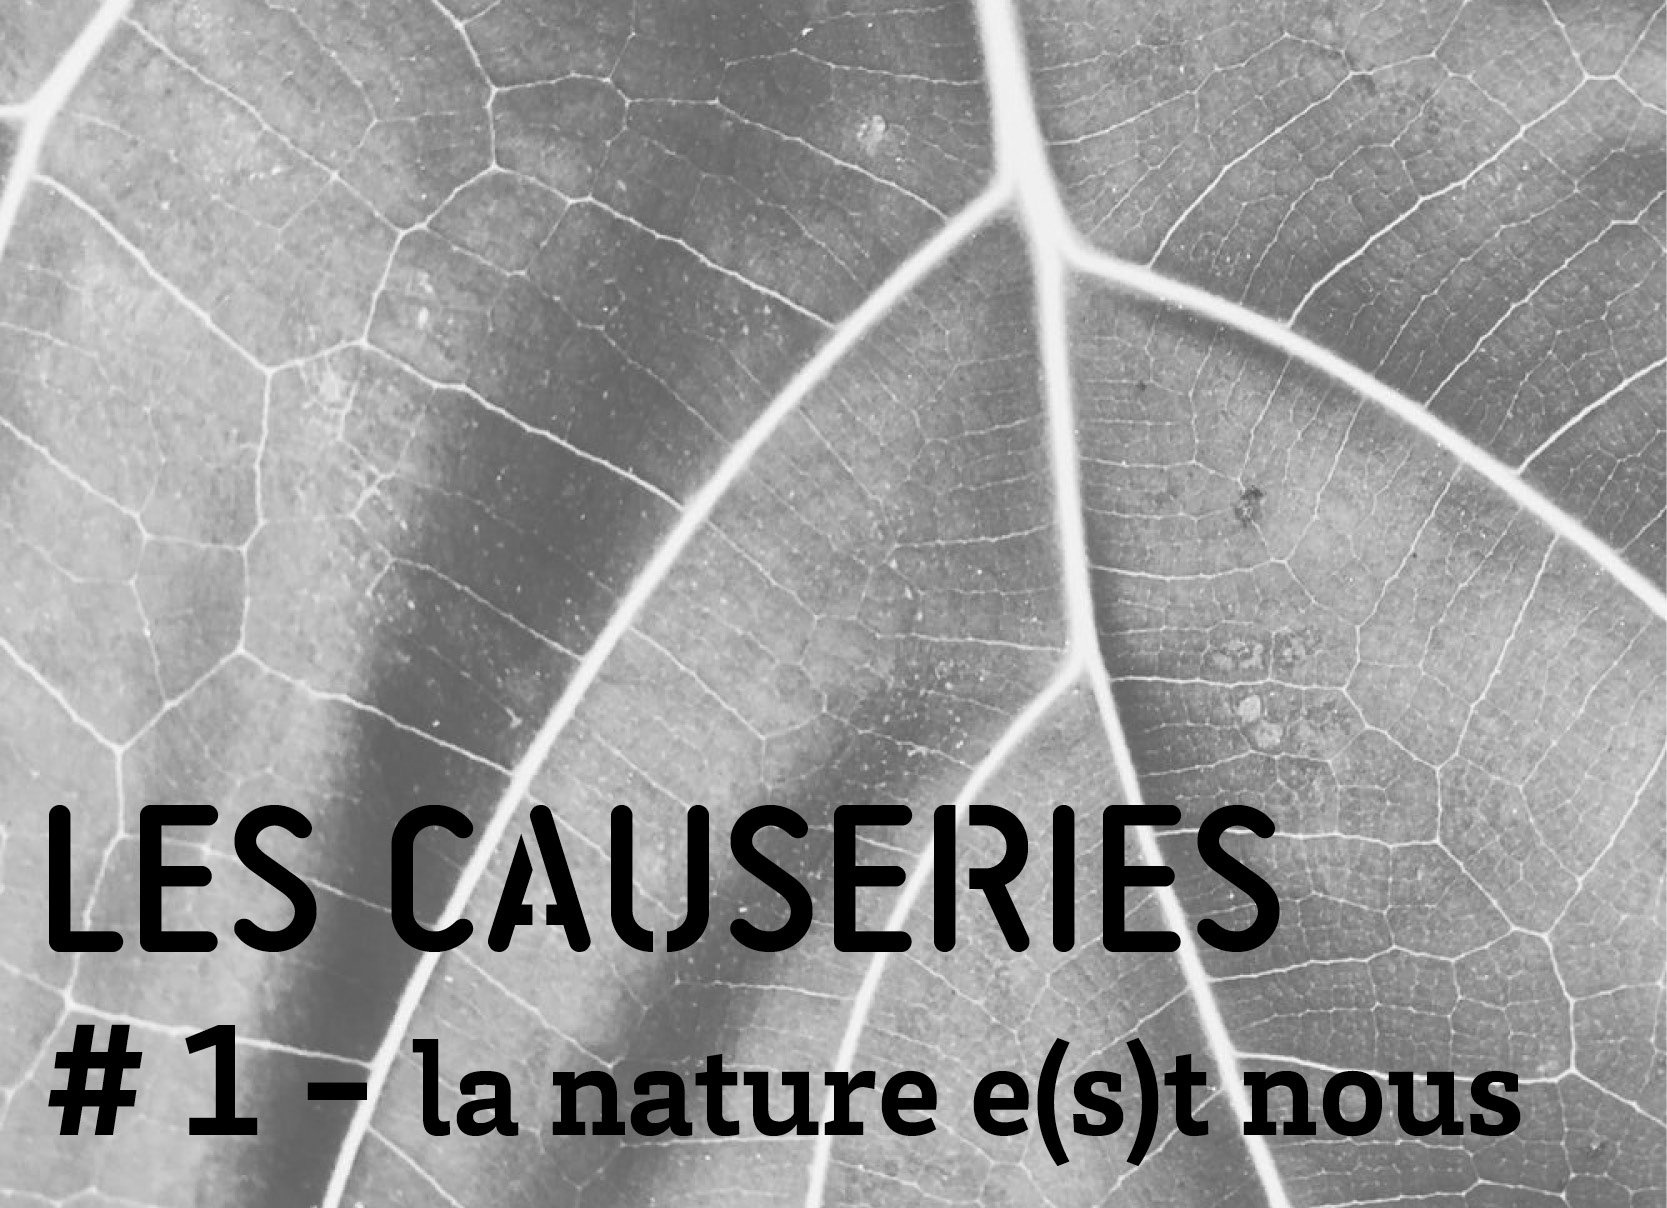 les causeries de La Manufacture #1 La Nature e(s)t nous